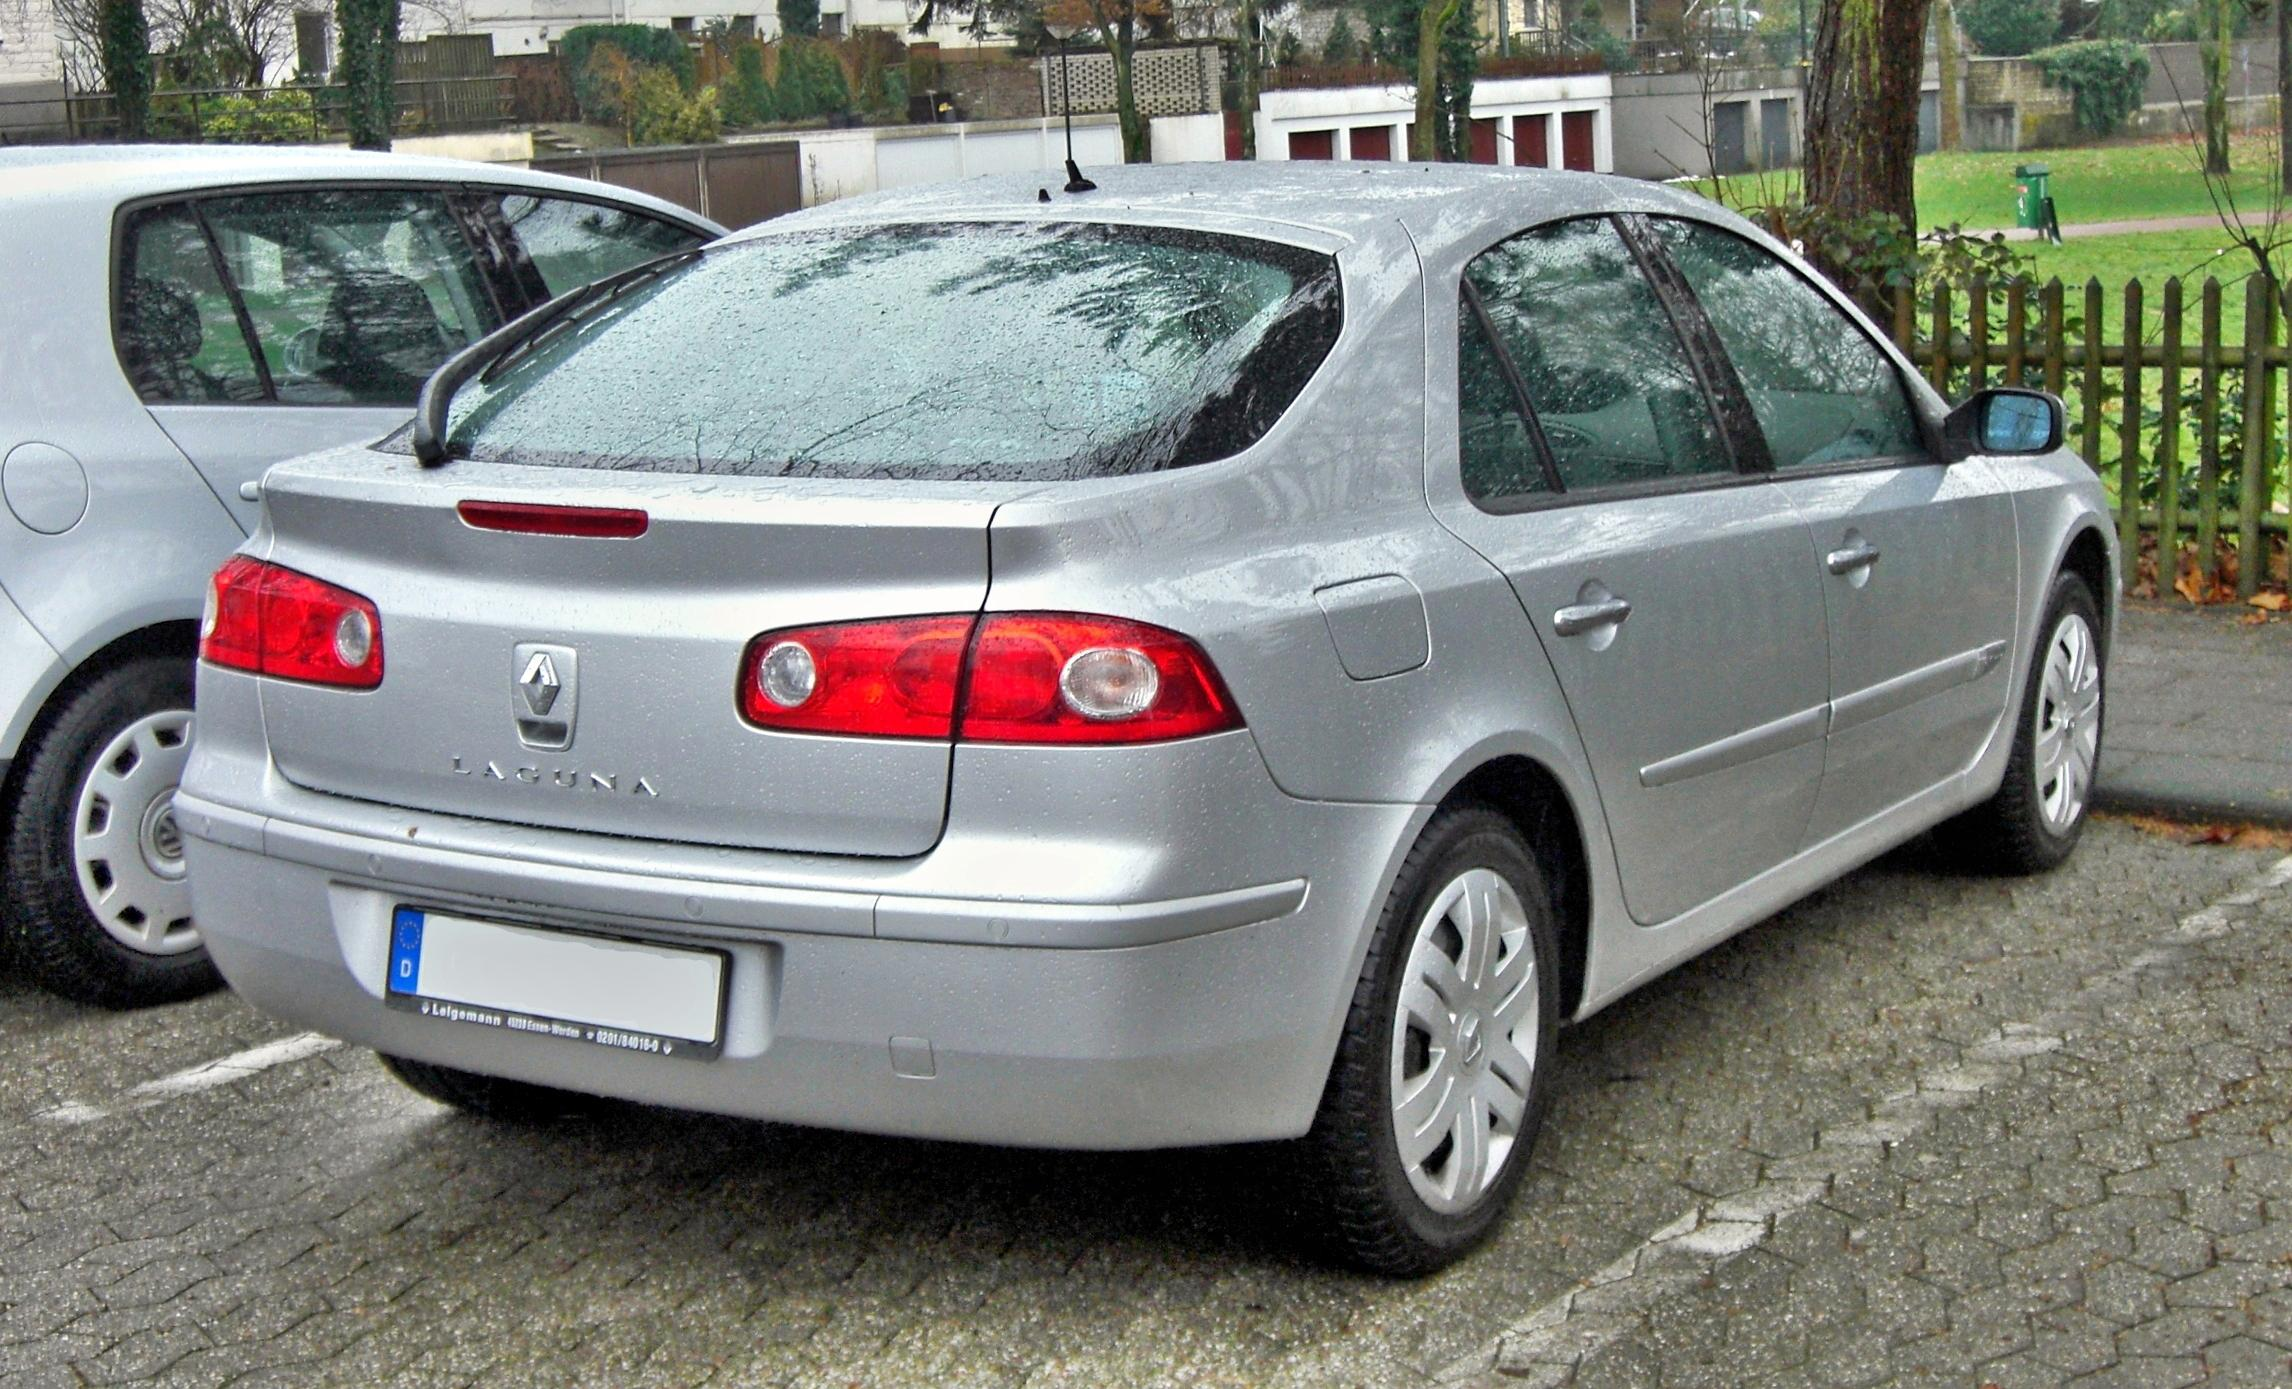 file renault laguna rear jpg wikimedia commons. Black Bedroom Furniture Sets. Home Design Ideas